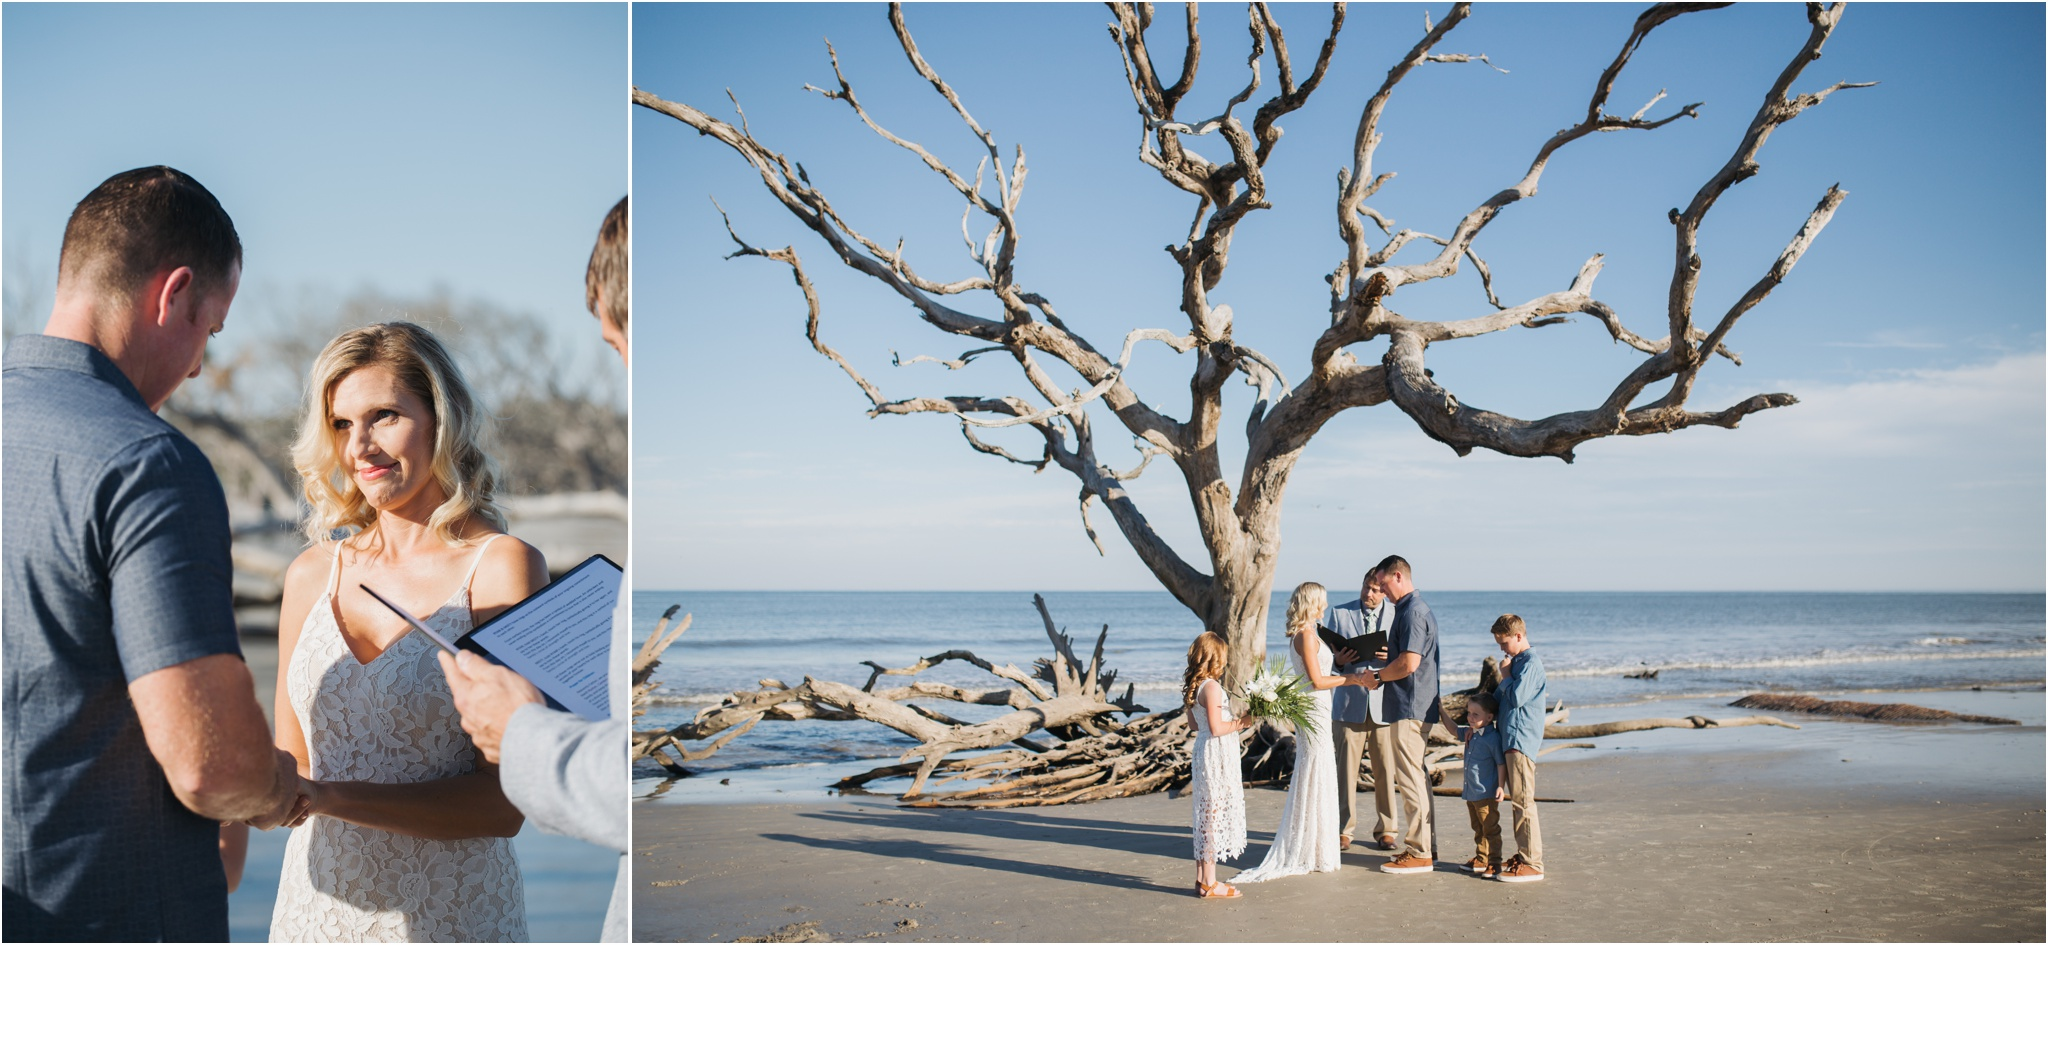 Rainey_Gregg_Photography_St._Simons_Island_Georgia_California_Wedding_Portrait_Photography_1570.jpg